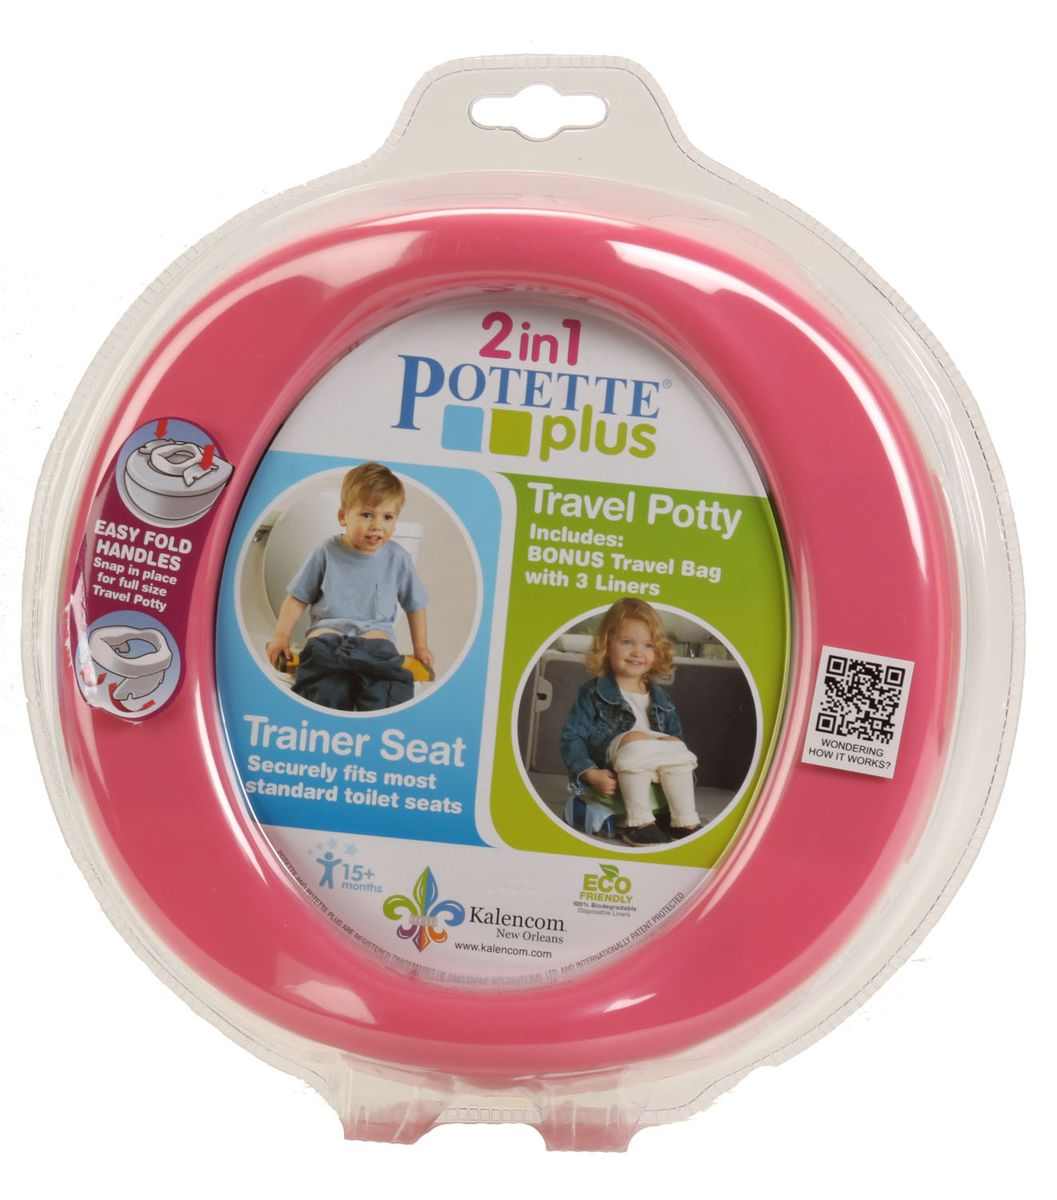 Potette plus 2-in-1 matkapotta/supistaja - Potat - 088161230108 - 4